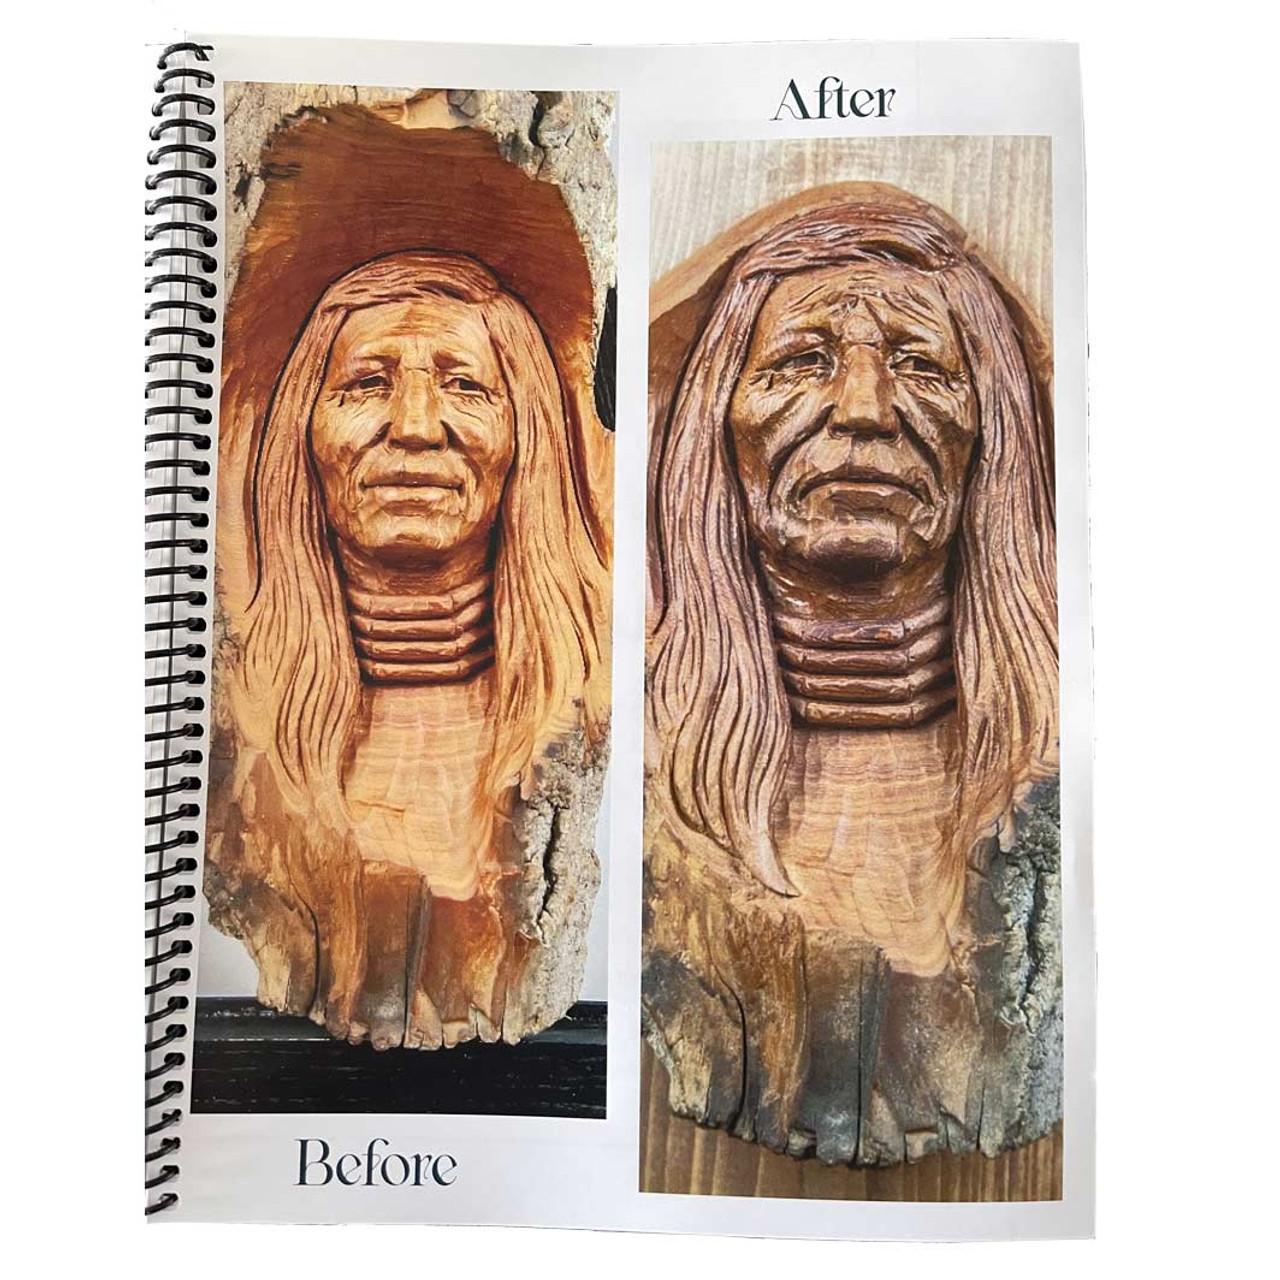 A good woodcarving example vs a great woodcarving.